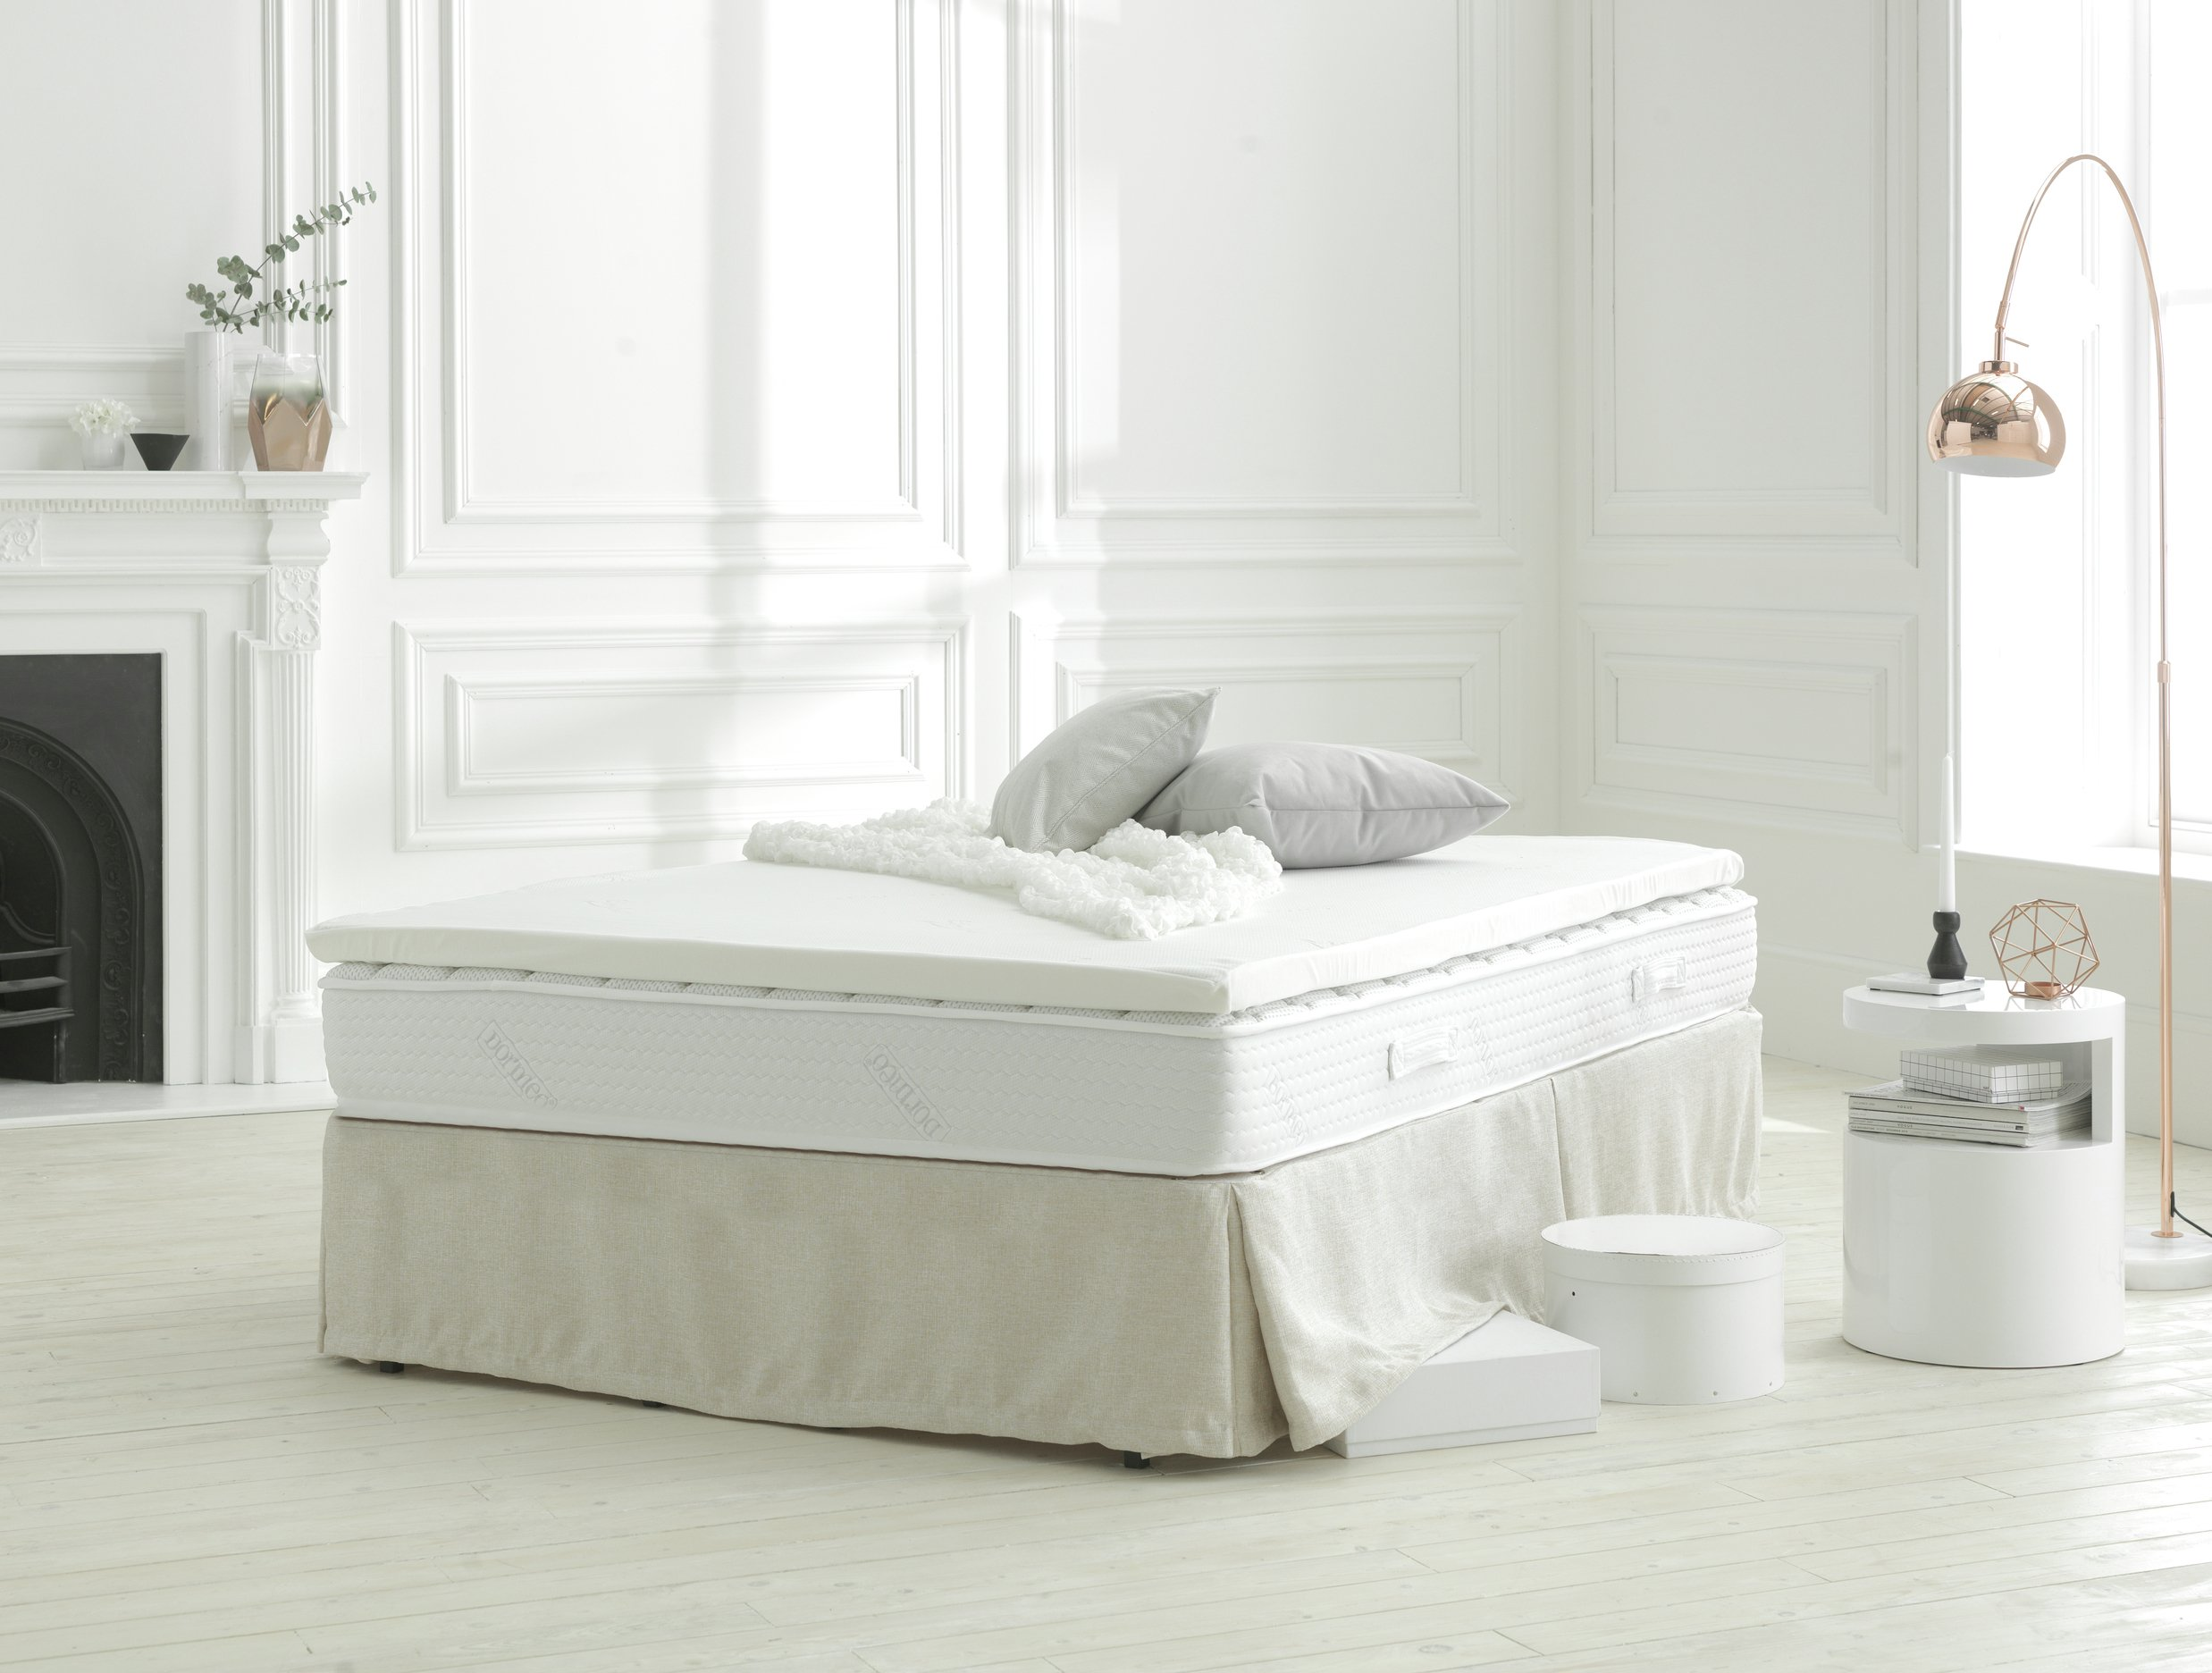 Image of Dormeo Renew Memory Mattress Topper - Double